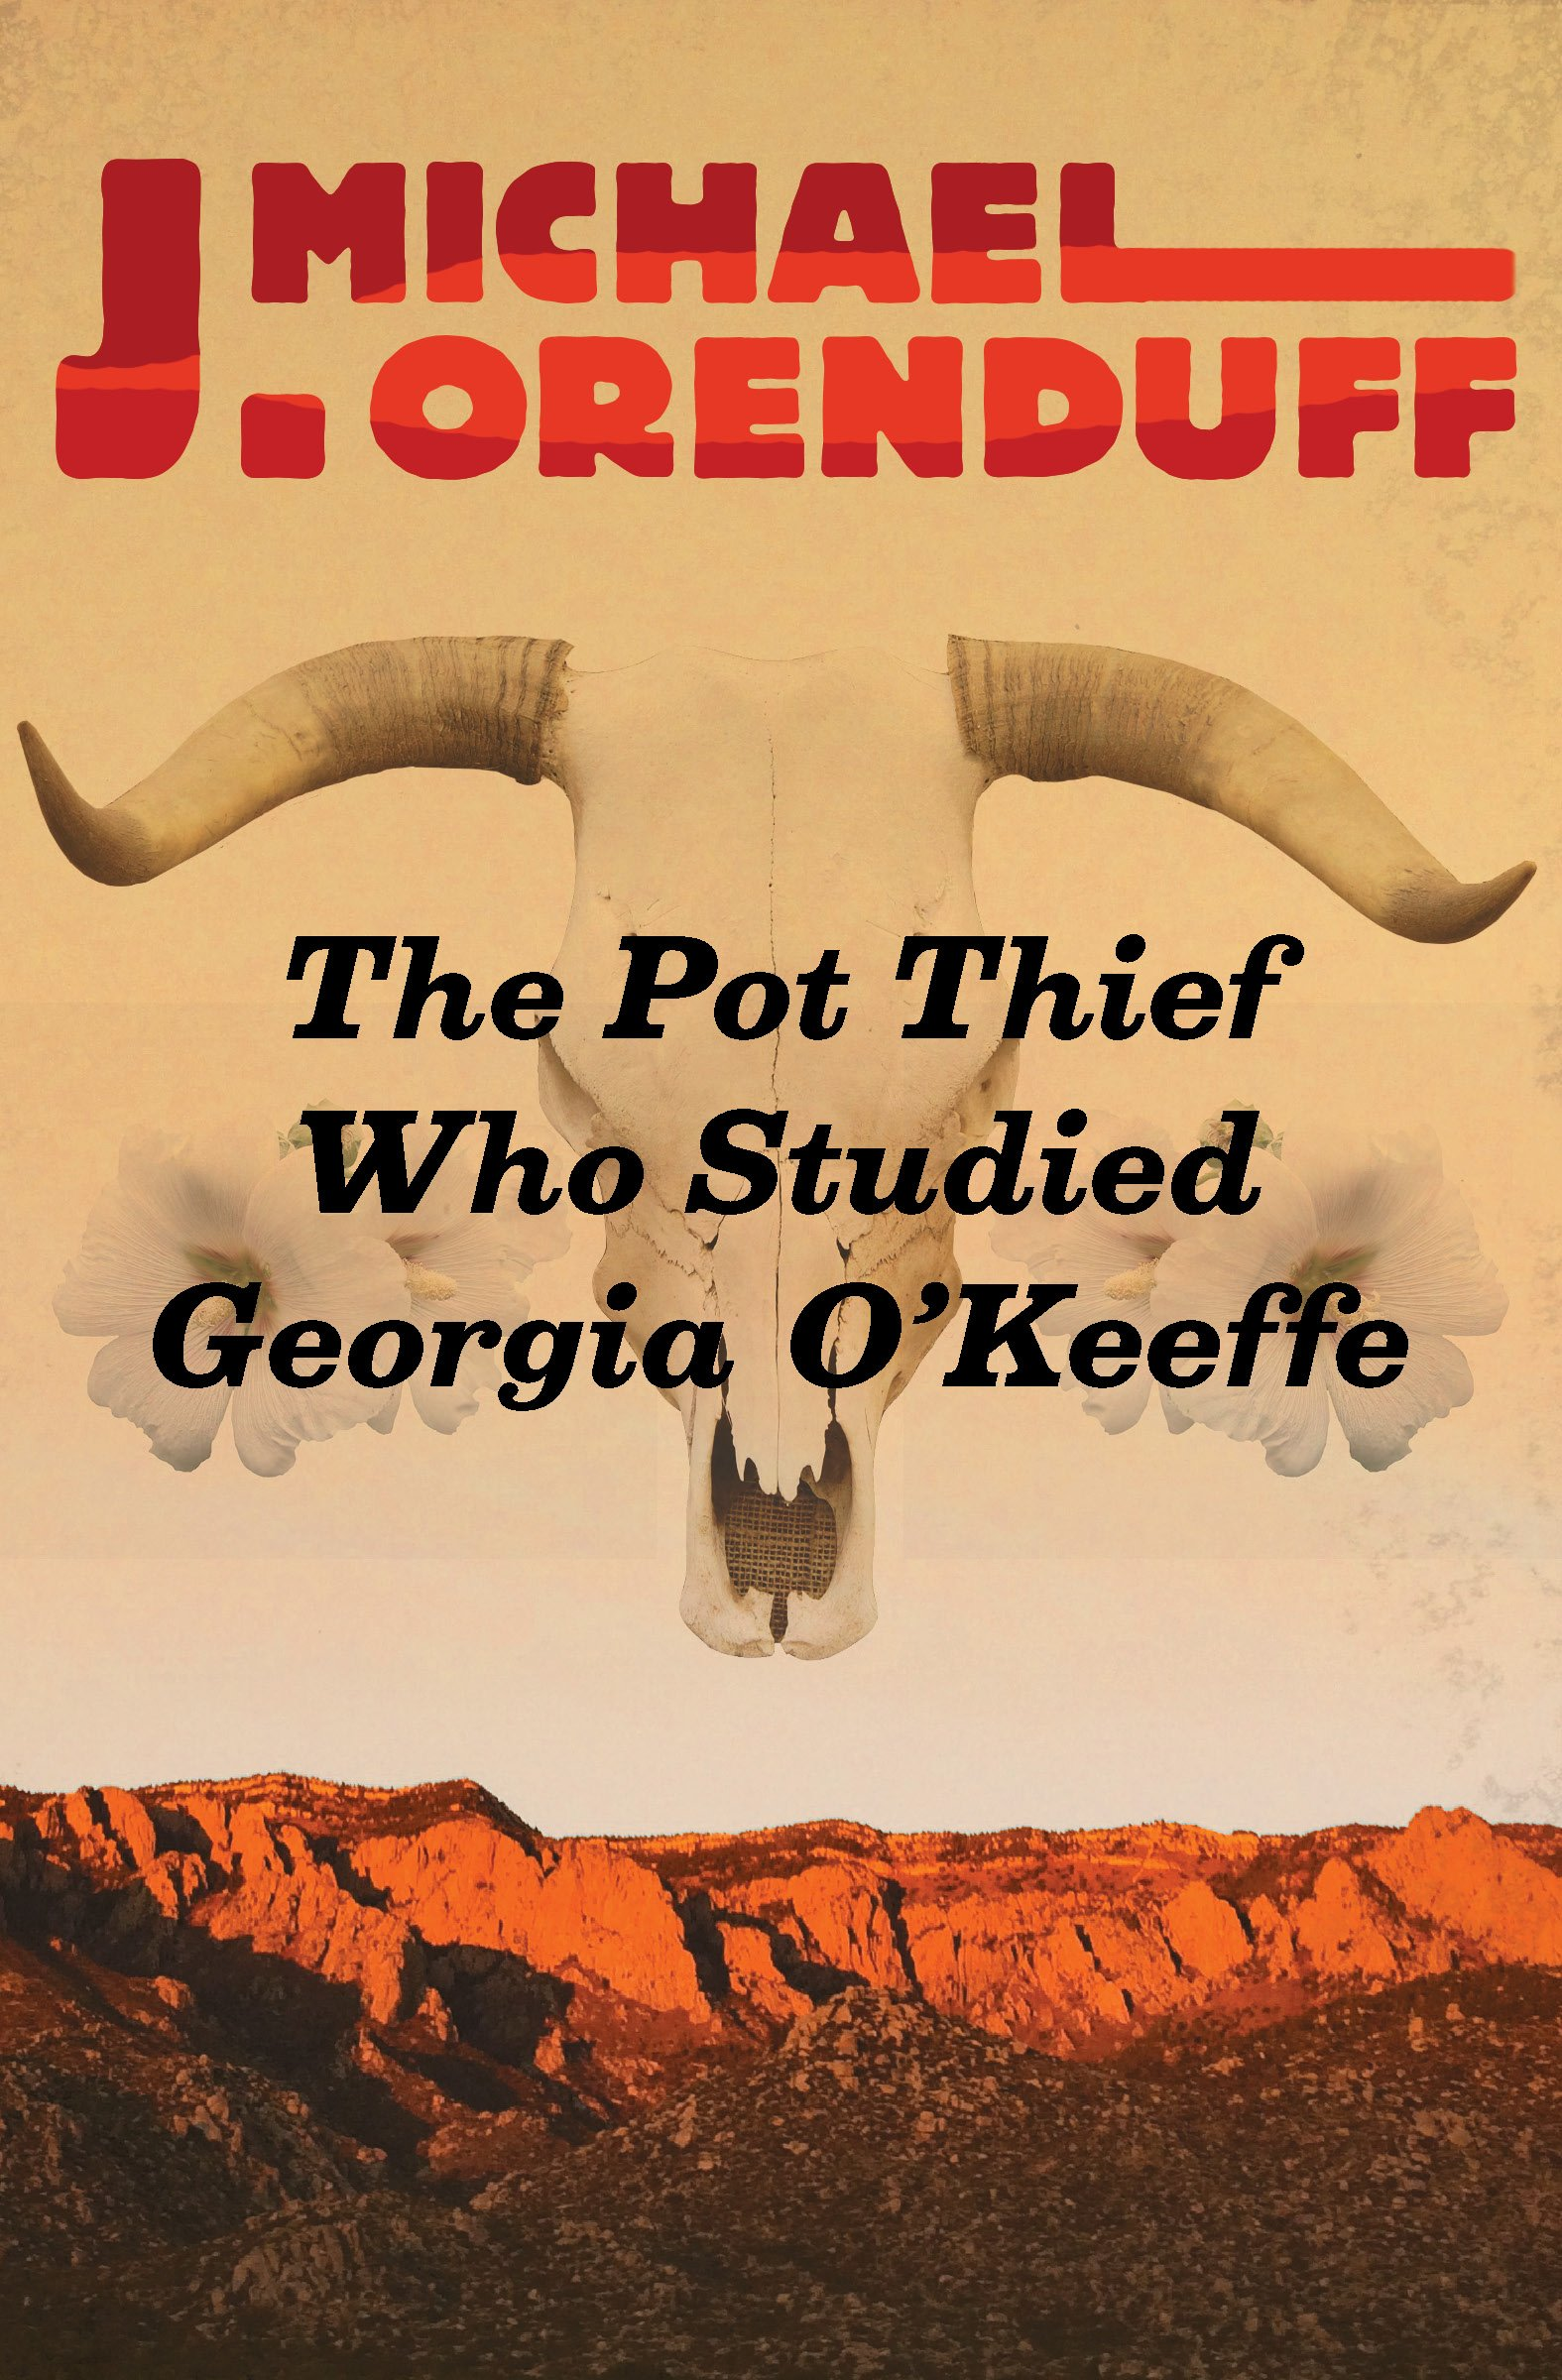 Download The Pot Thief Who Studied Georgia O'Keeffe (The Pot Thief Mysteries) PDF